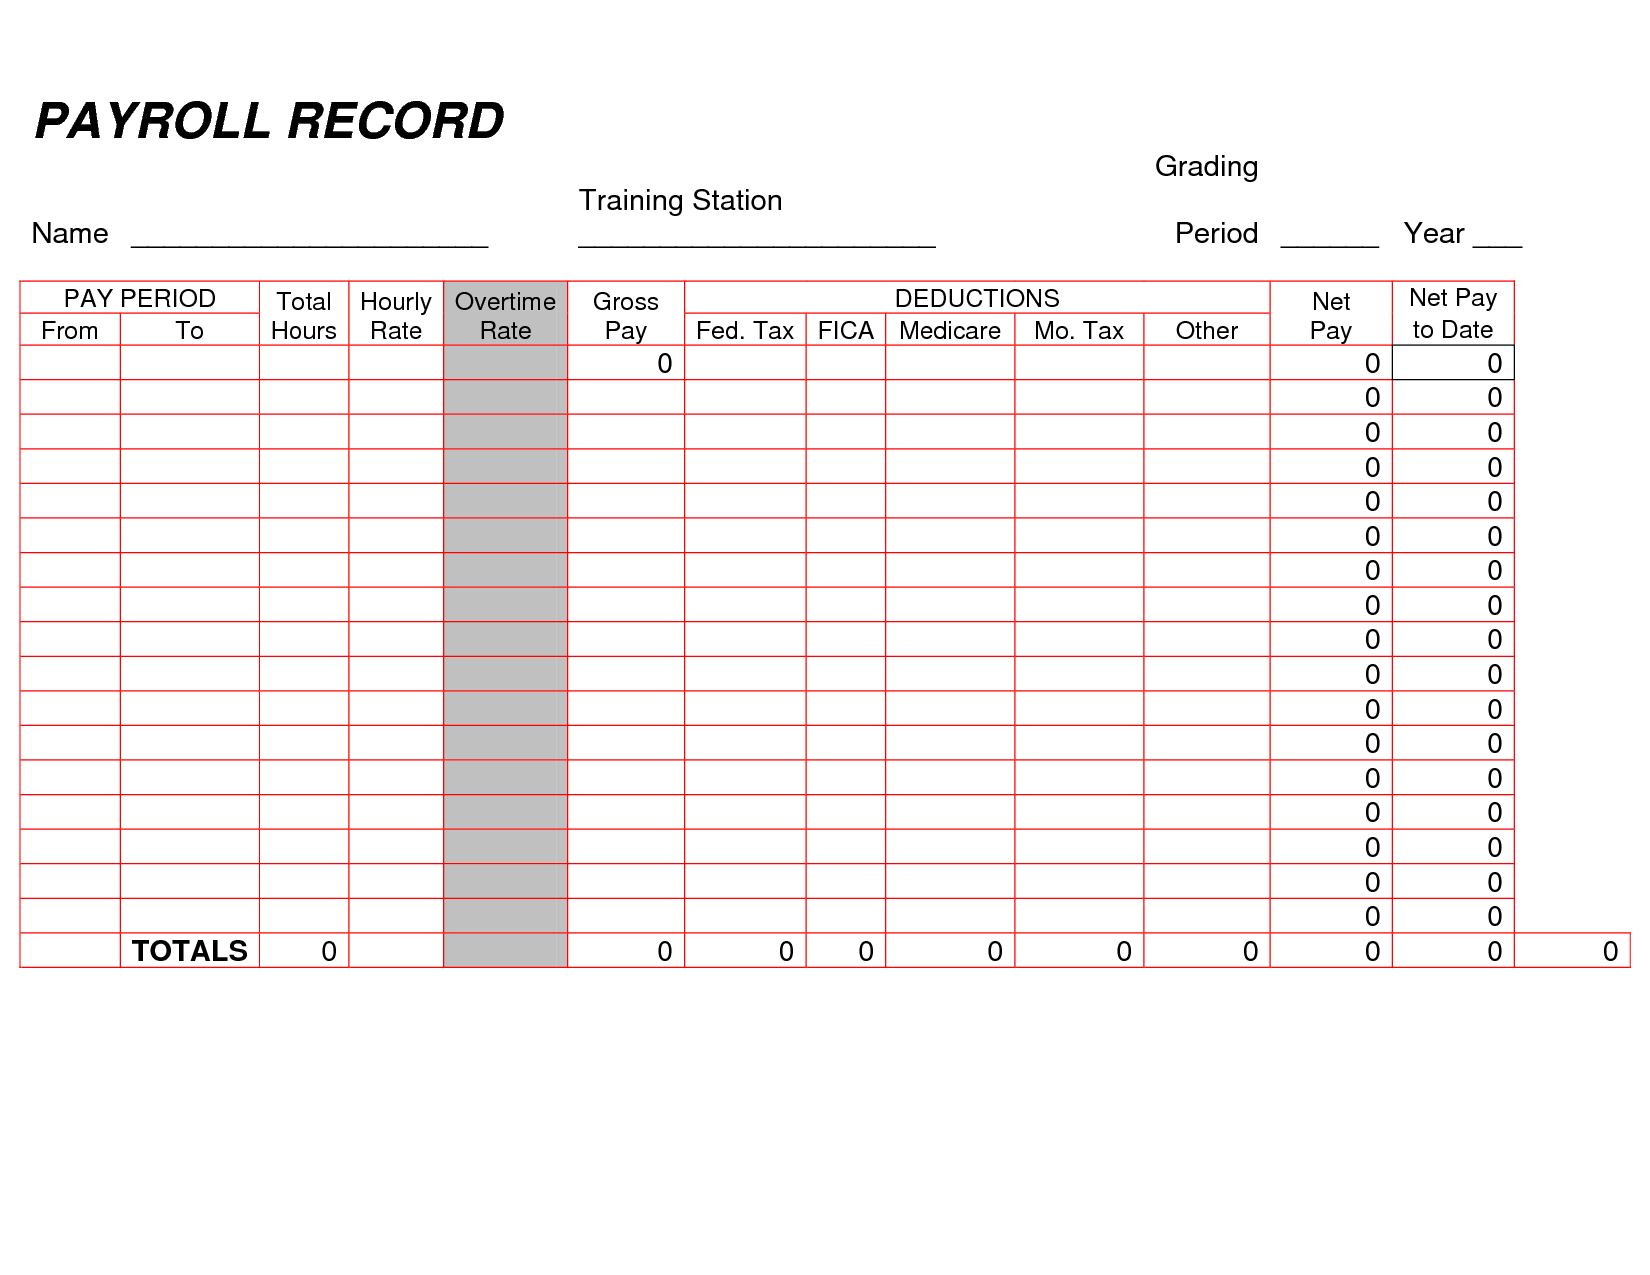 Printable Payroll Ledger | Blank Payroll Record - PDF | Things to ...